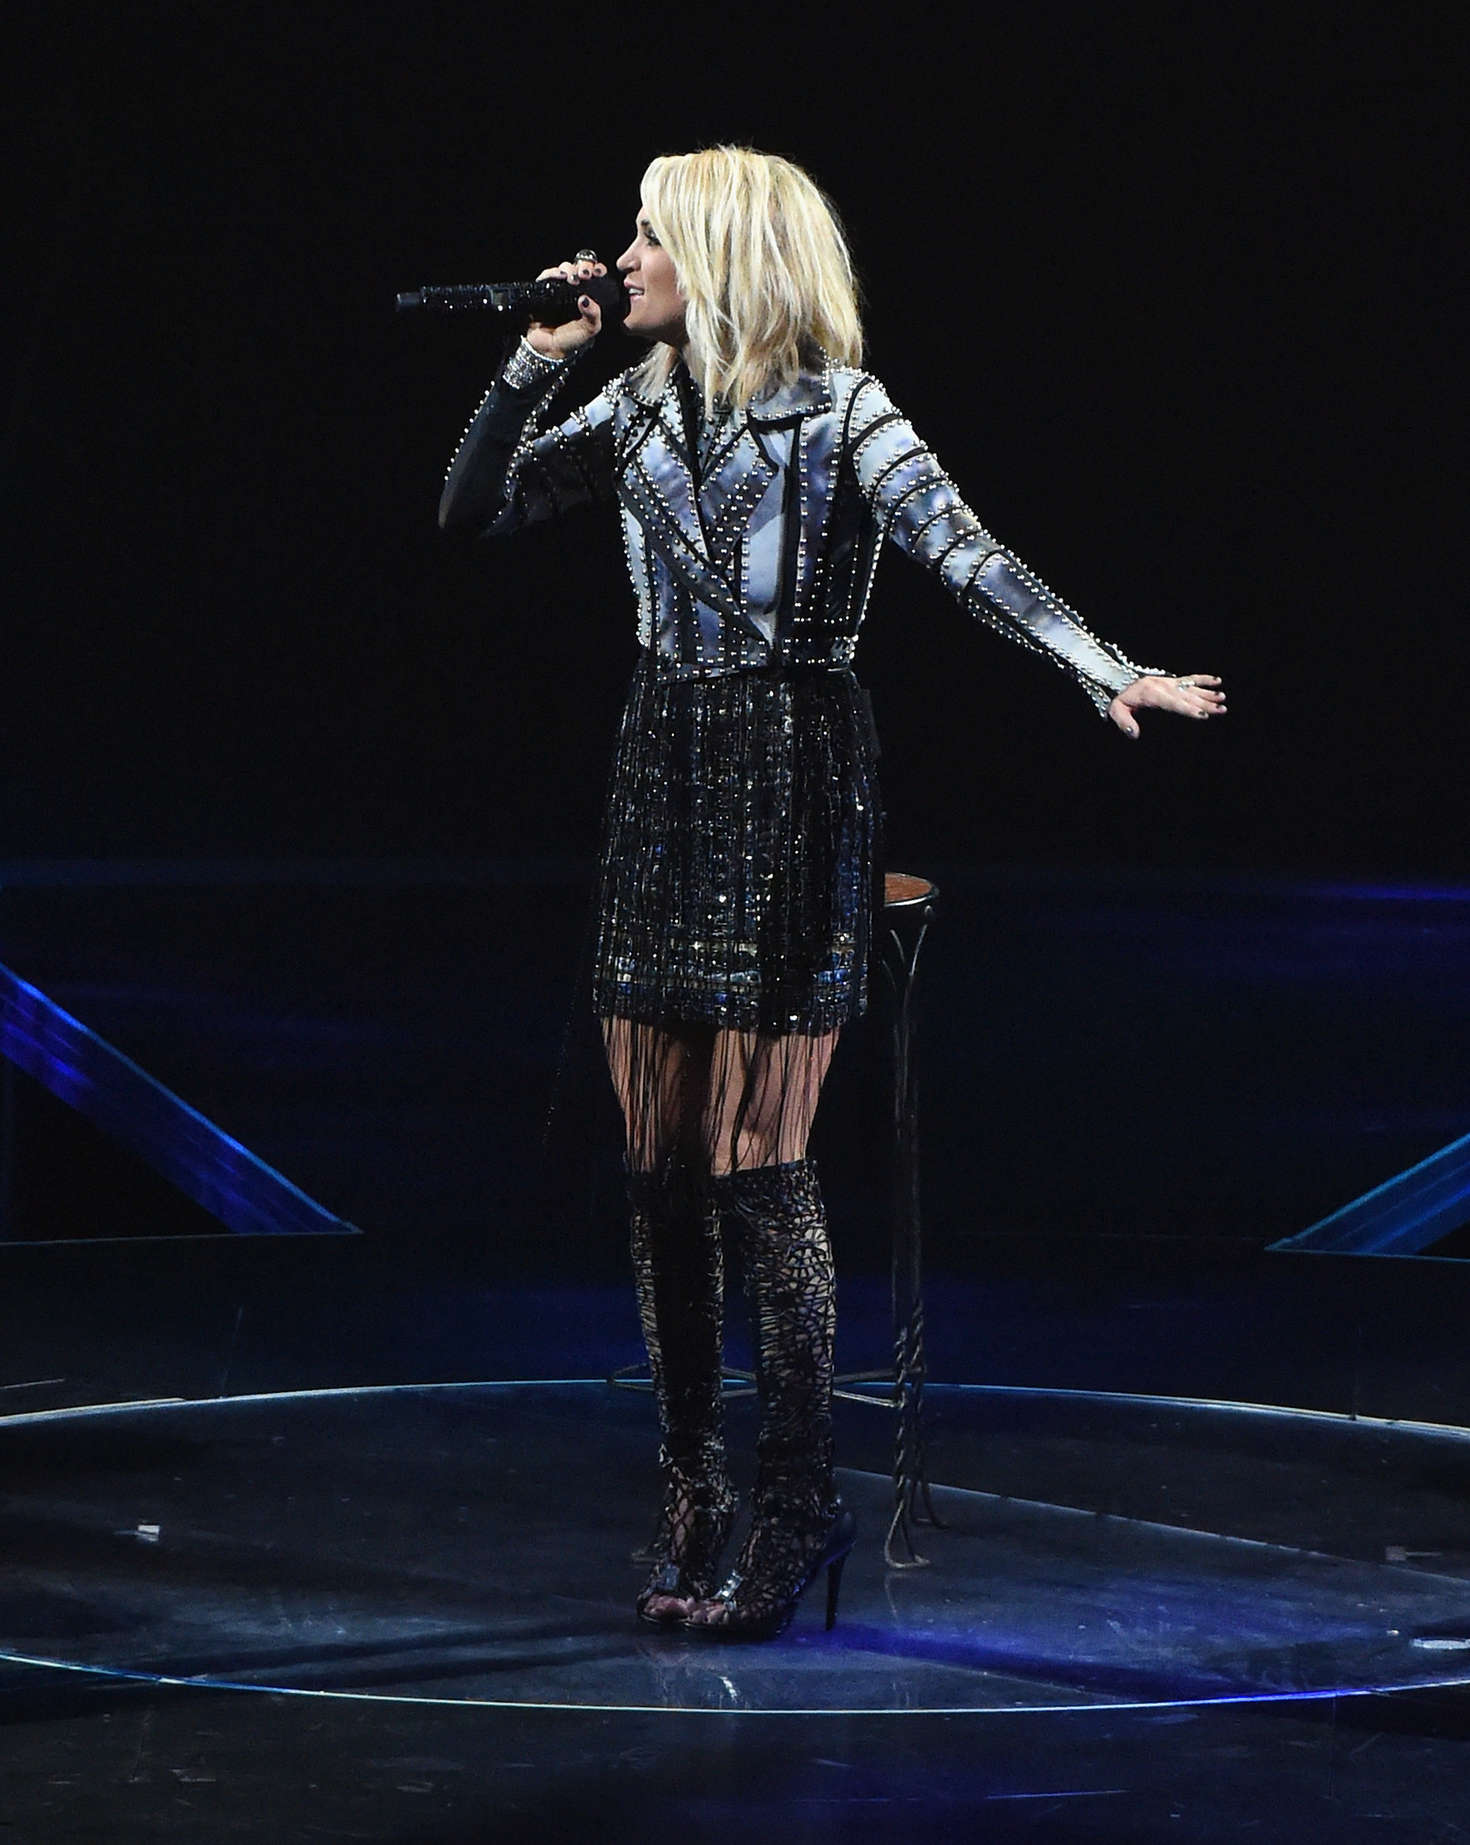 carrie underwood tour - HD1470×1845